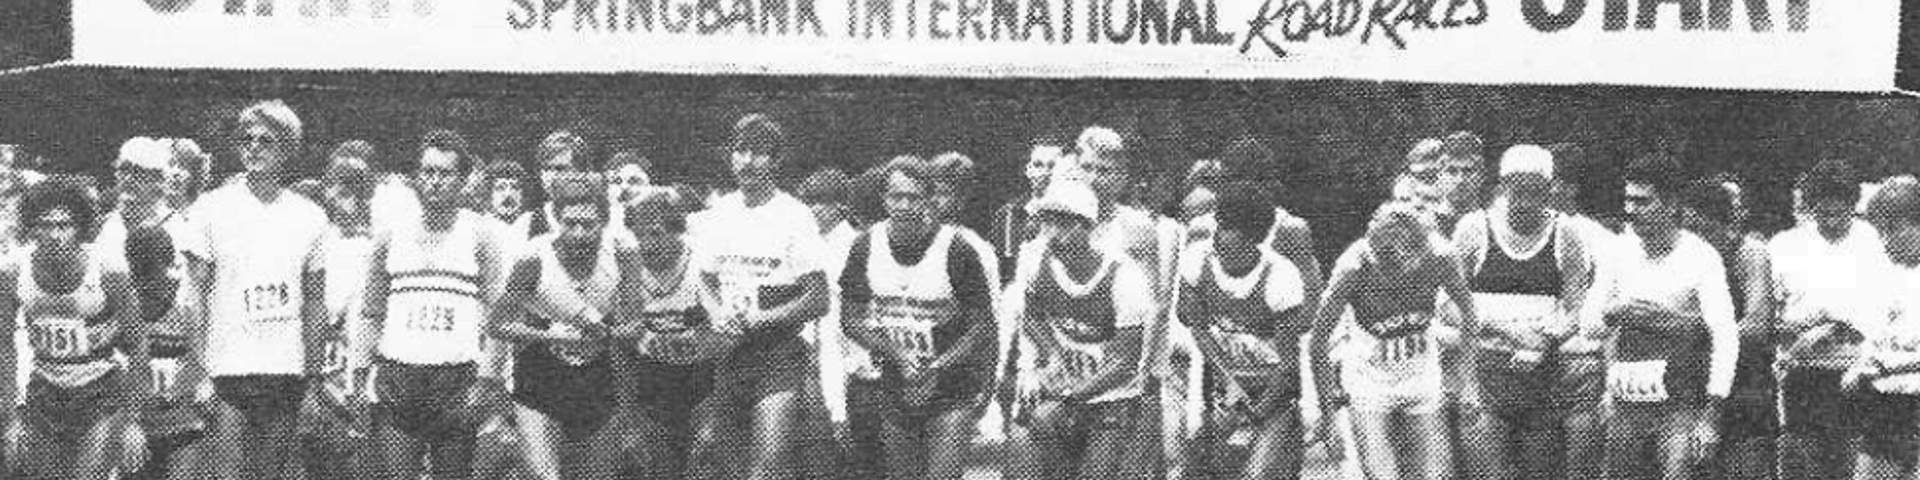 Springbank International Road Races 1985 - Start Line